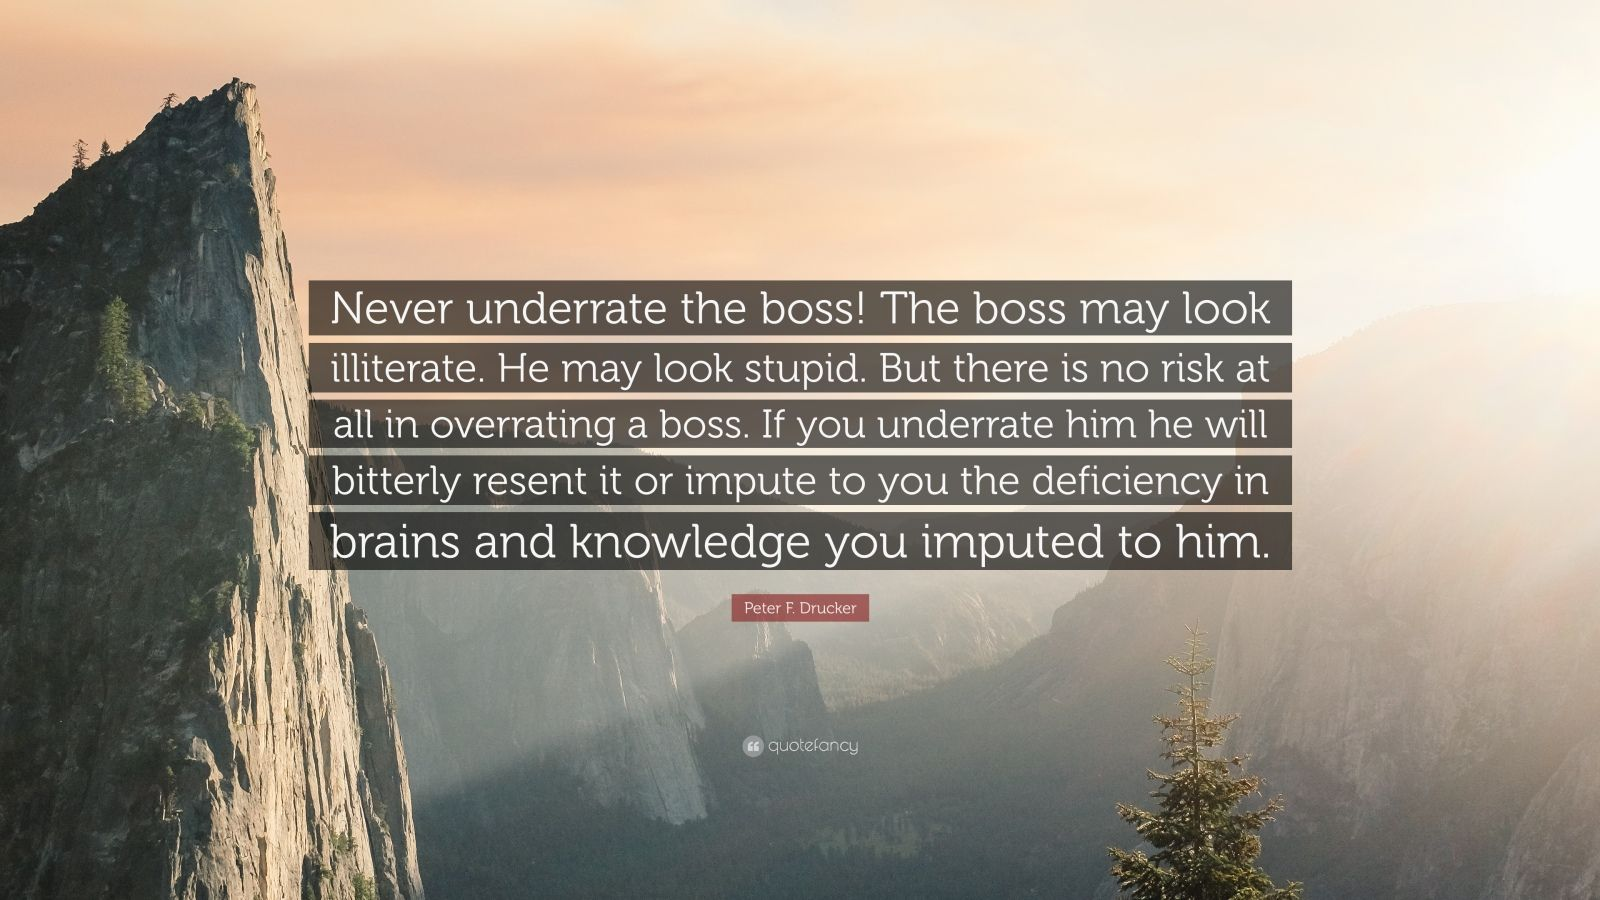 """Peter F. Drucker Quote: """"Never underrate the boss! The boss may look illiterate. He may look stupid. But there is no risk at all in overrating a boss. If you underrate him he will bitterly resent it or impute to you the deficiency in brains and knowledge you imputed to him."""""""